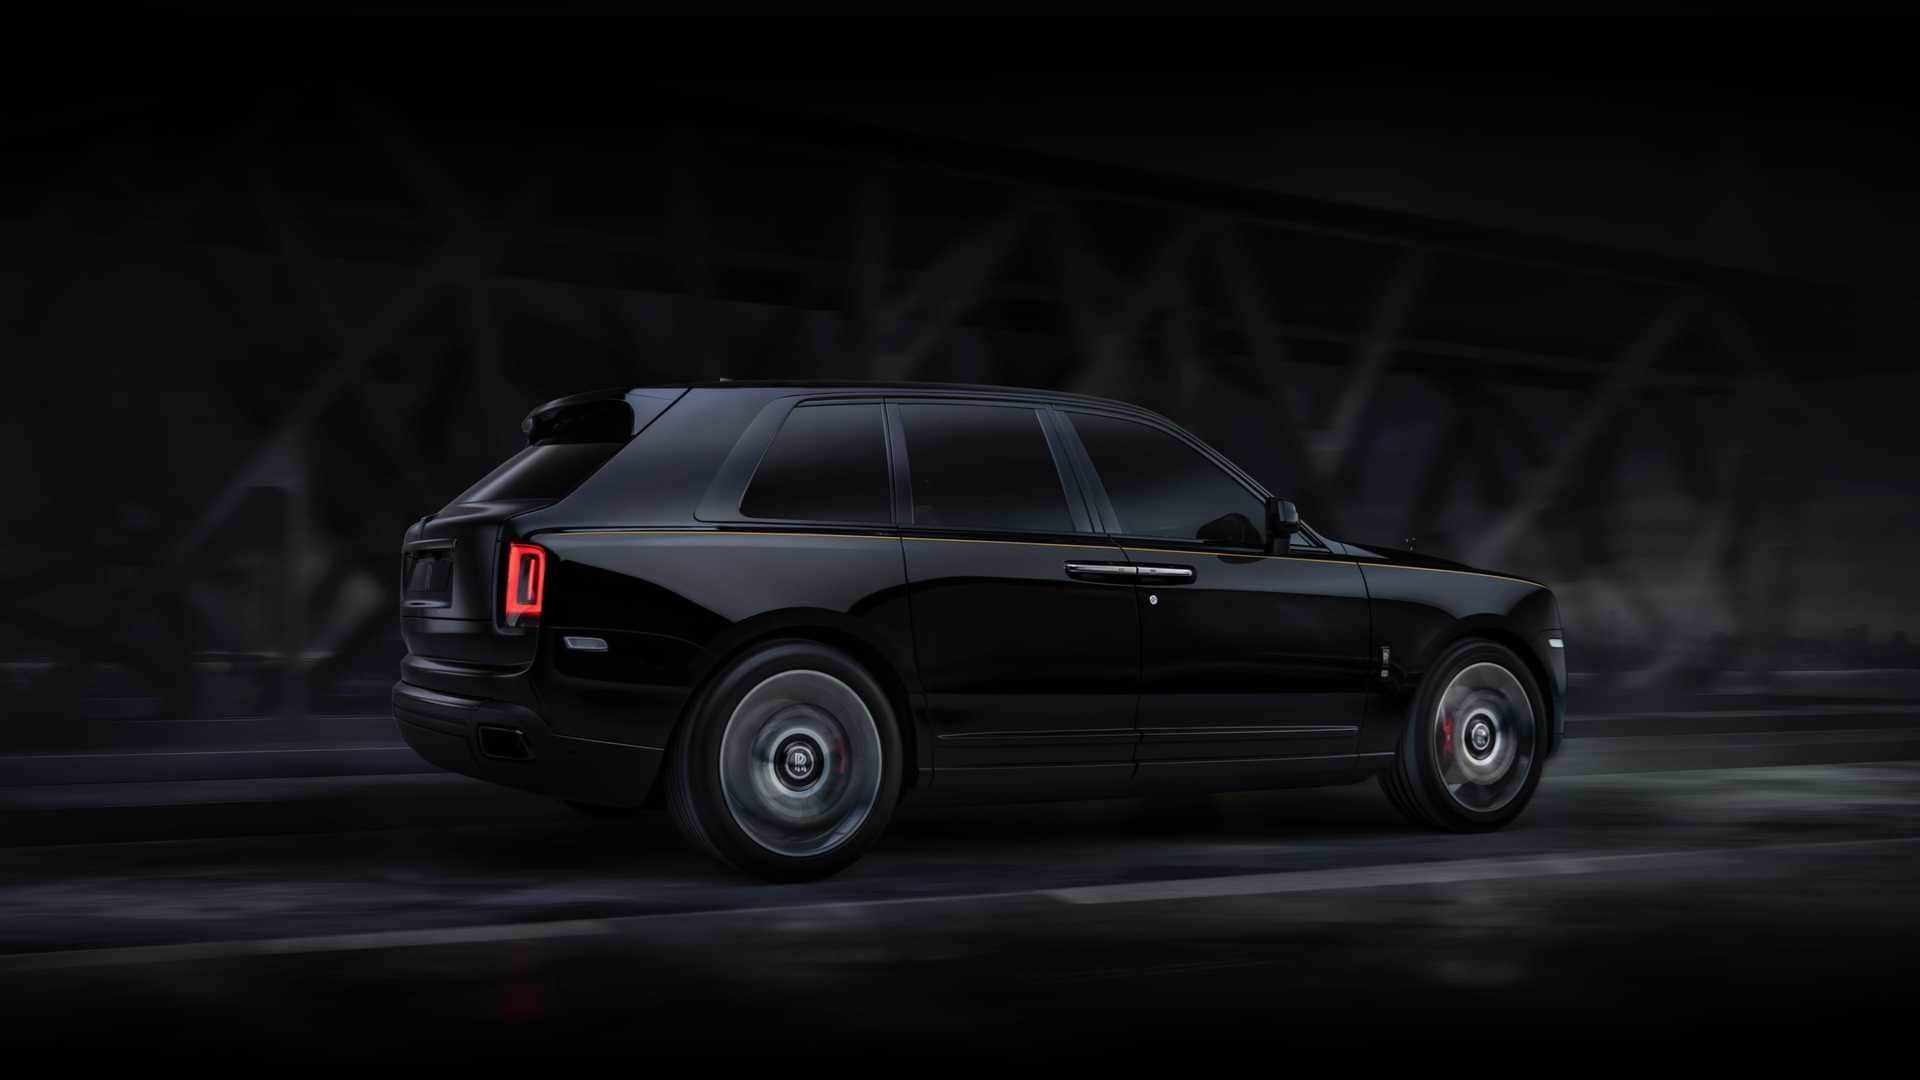 The British carmaker has given a complete dark makeover to its popular SUV.